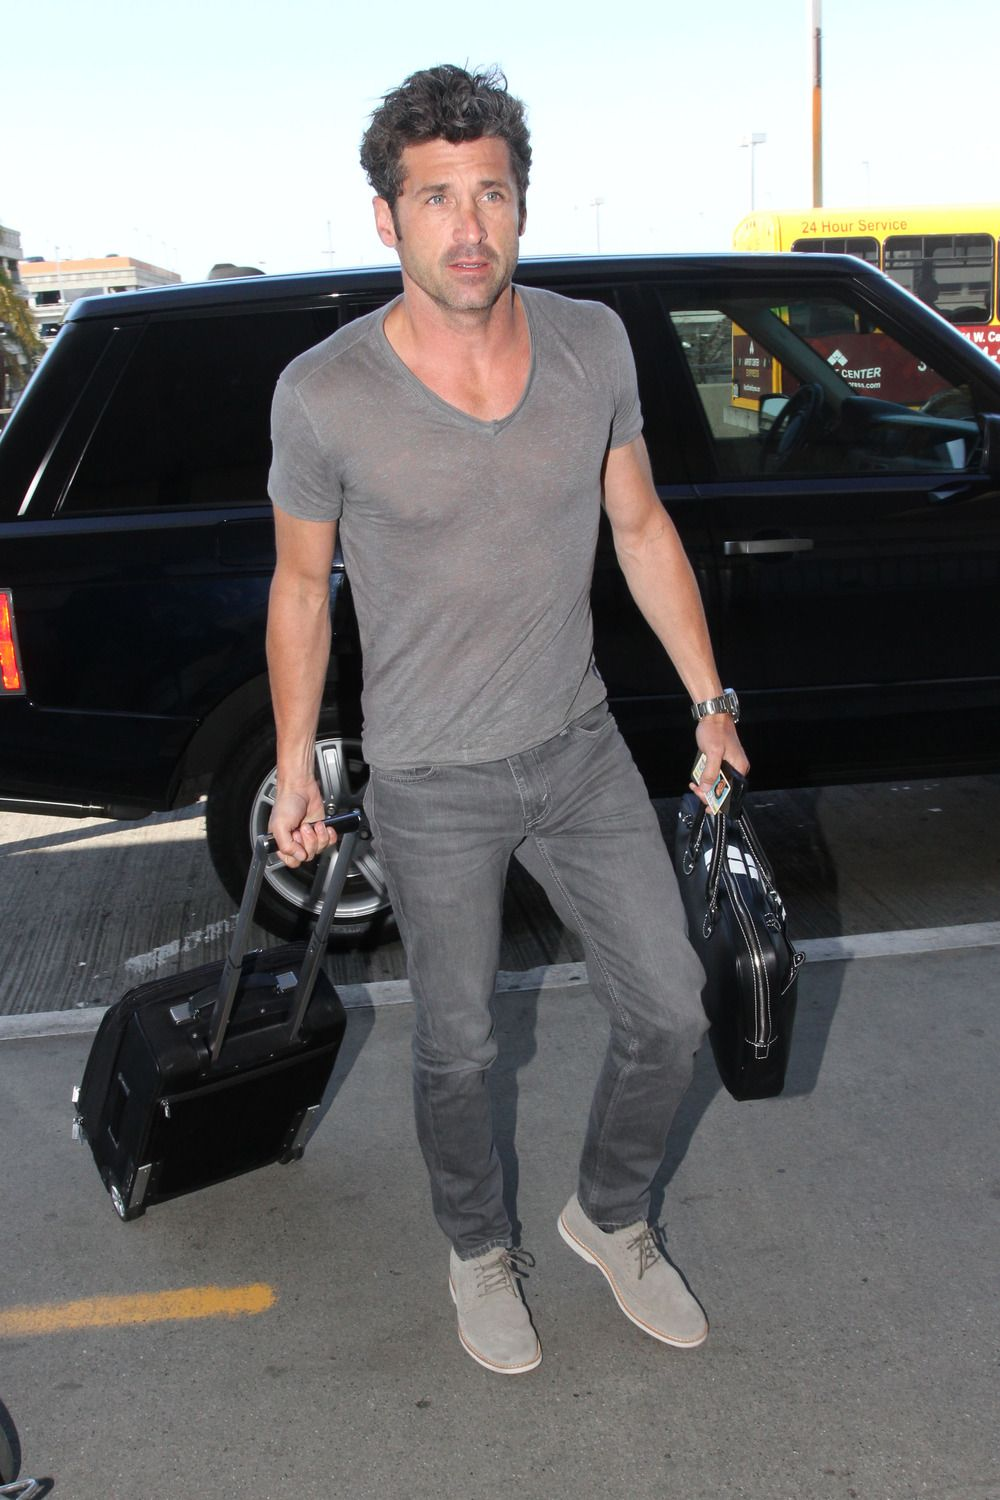 Hottest Ever Patrick Dempsey Wears Tight Shirt For Photo Shoot With